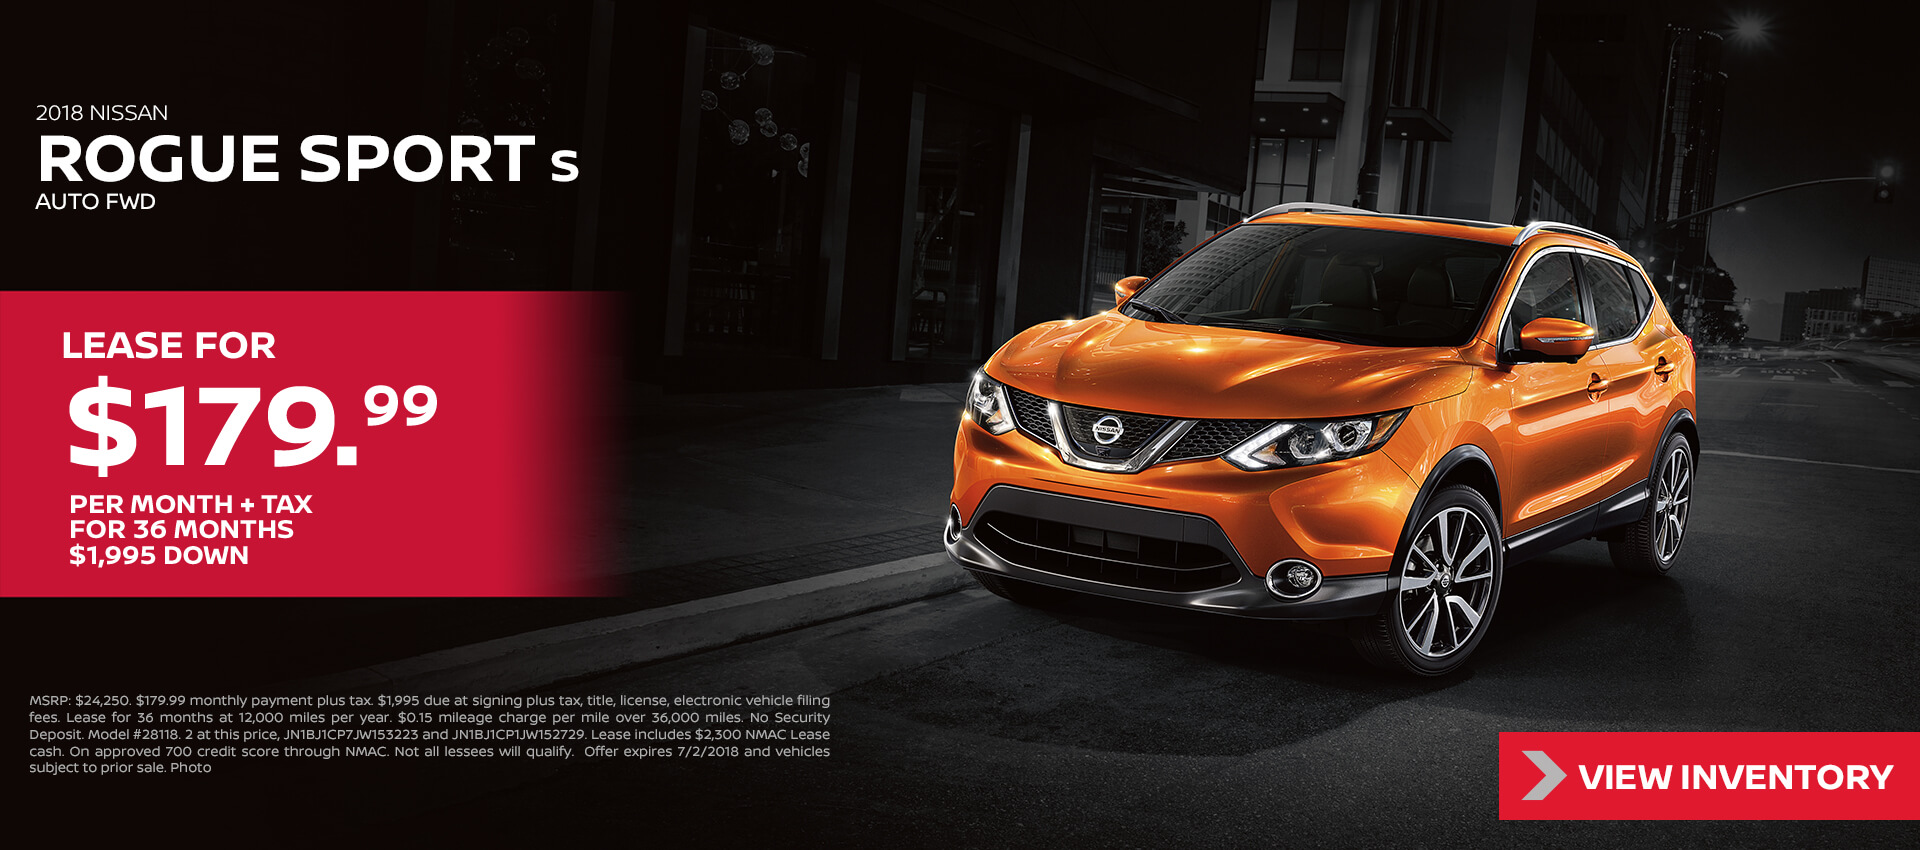 2018 Nissan Rogue Sport Lease